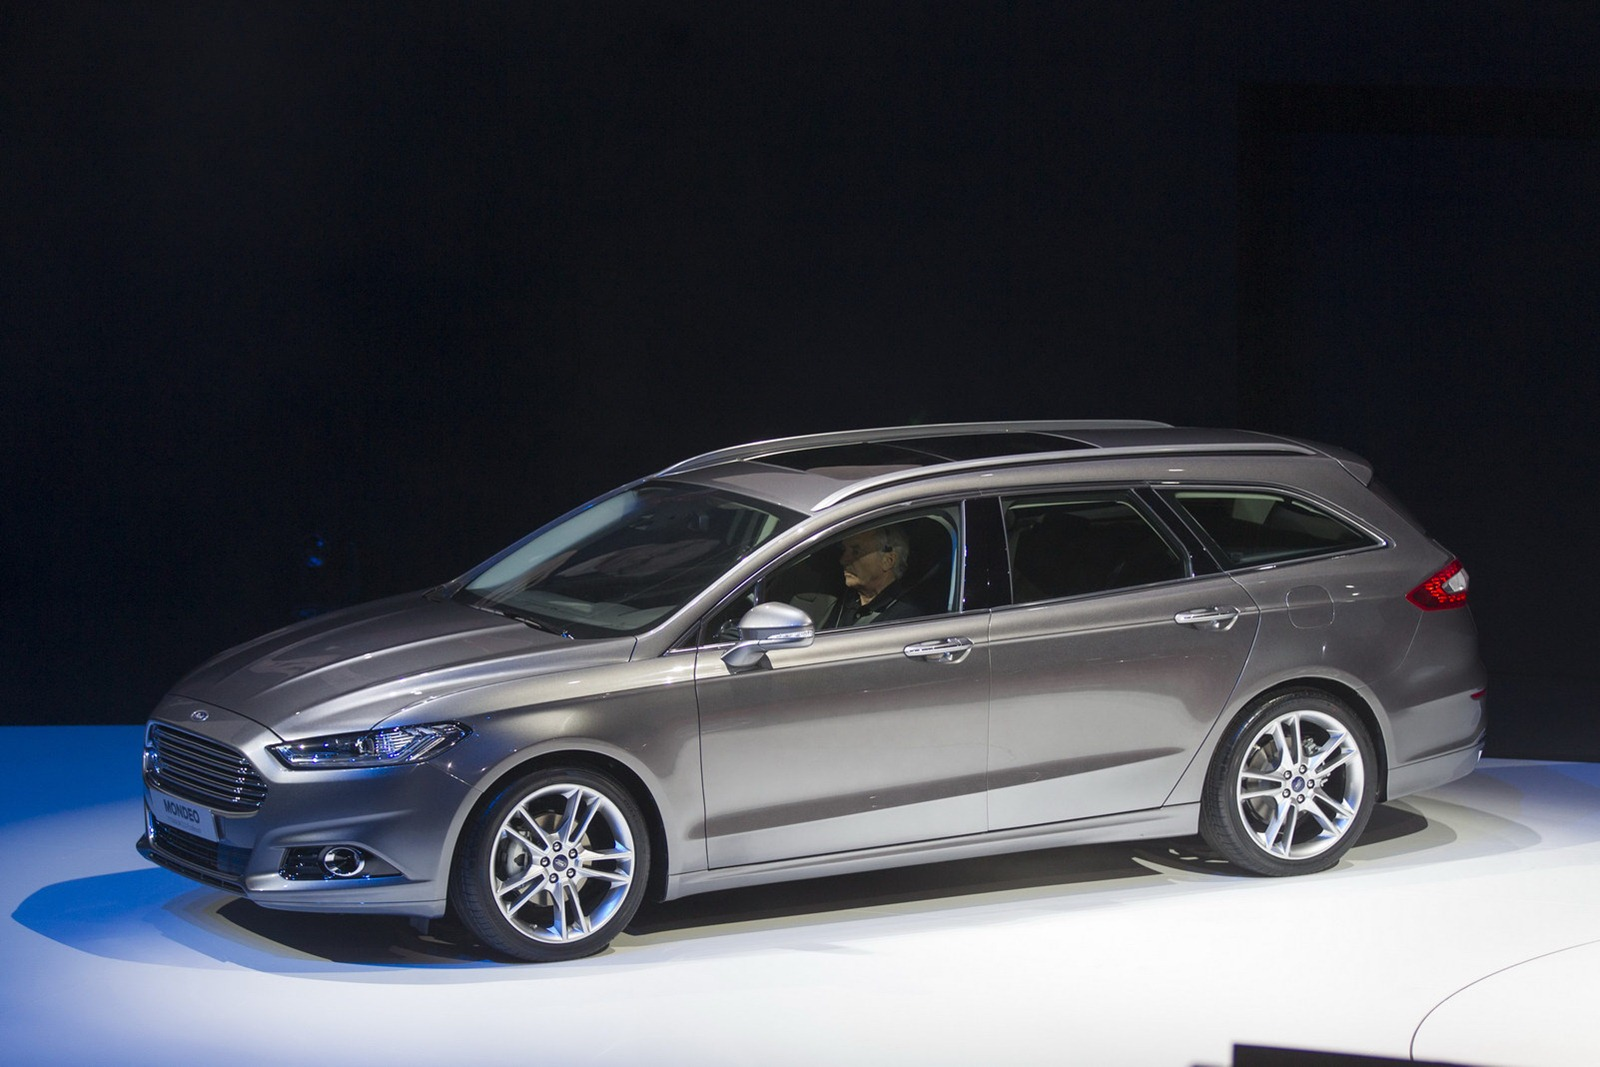 5th gen ford mondeo wagon version not